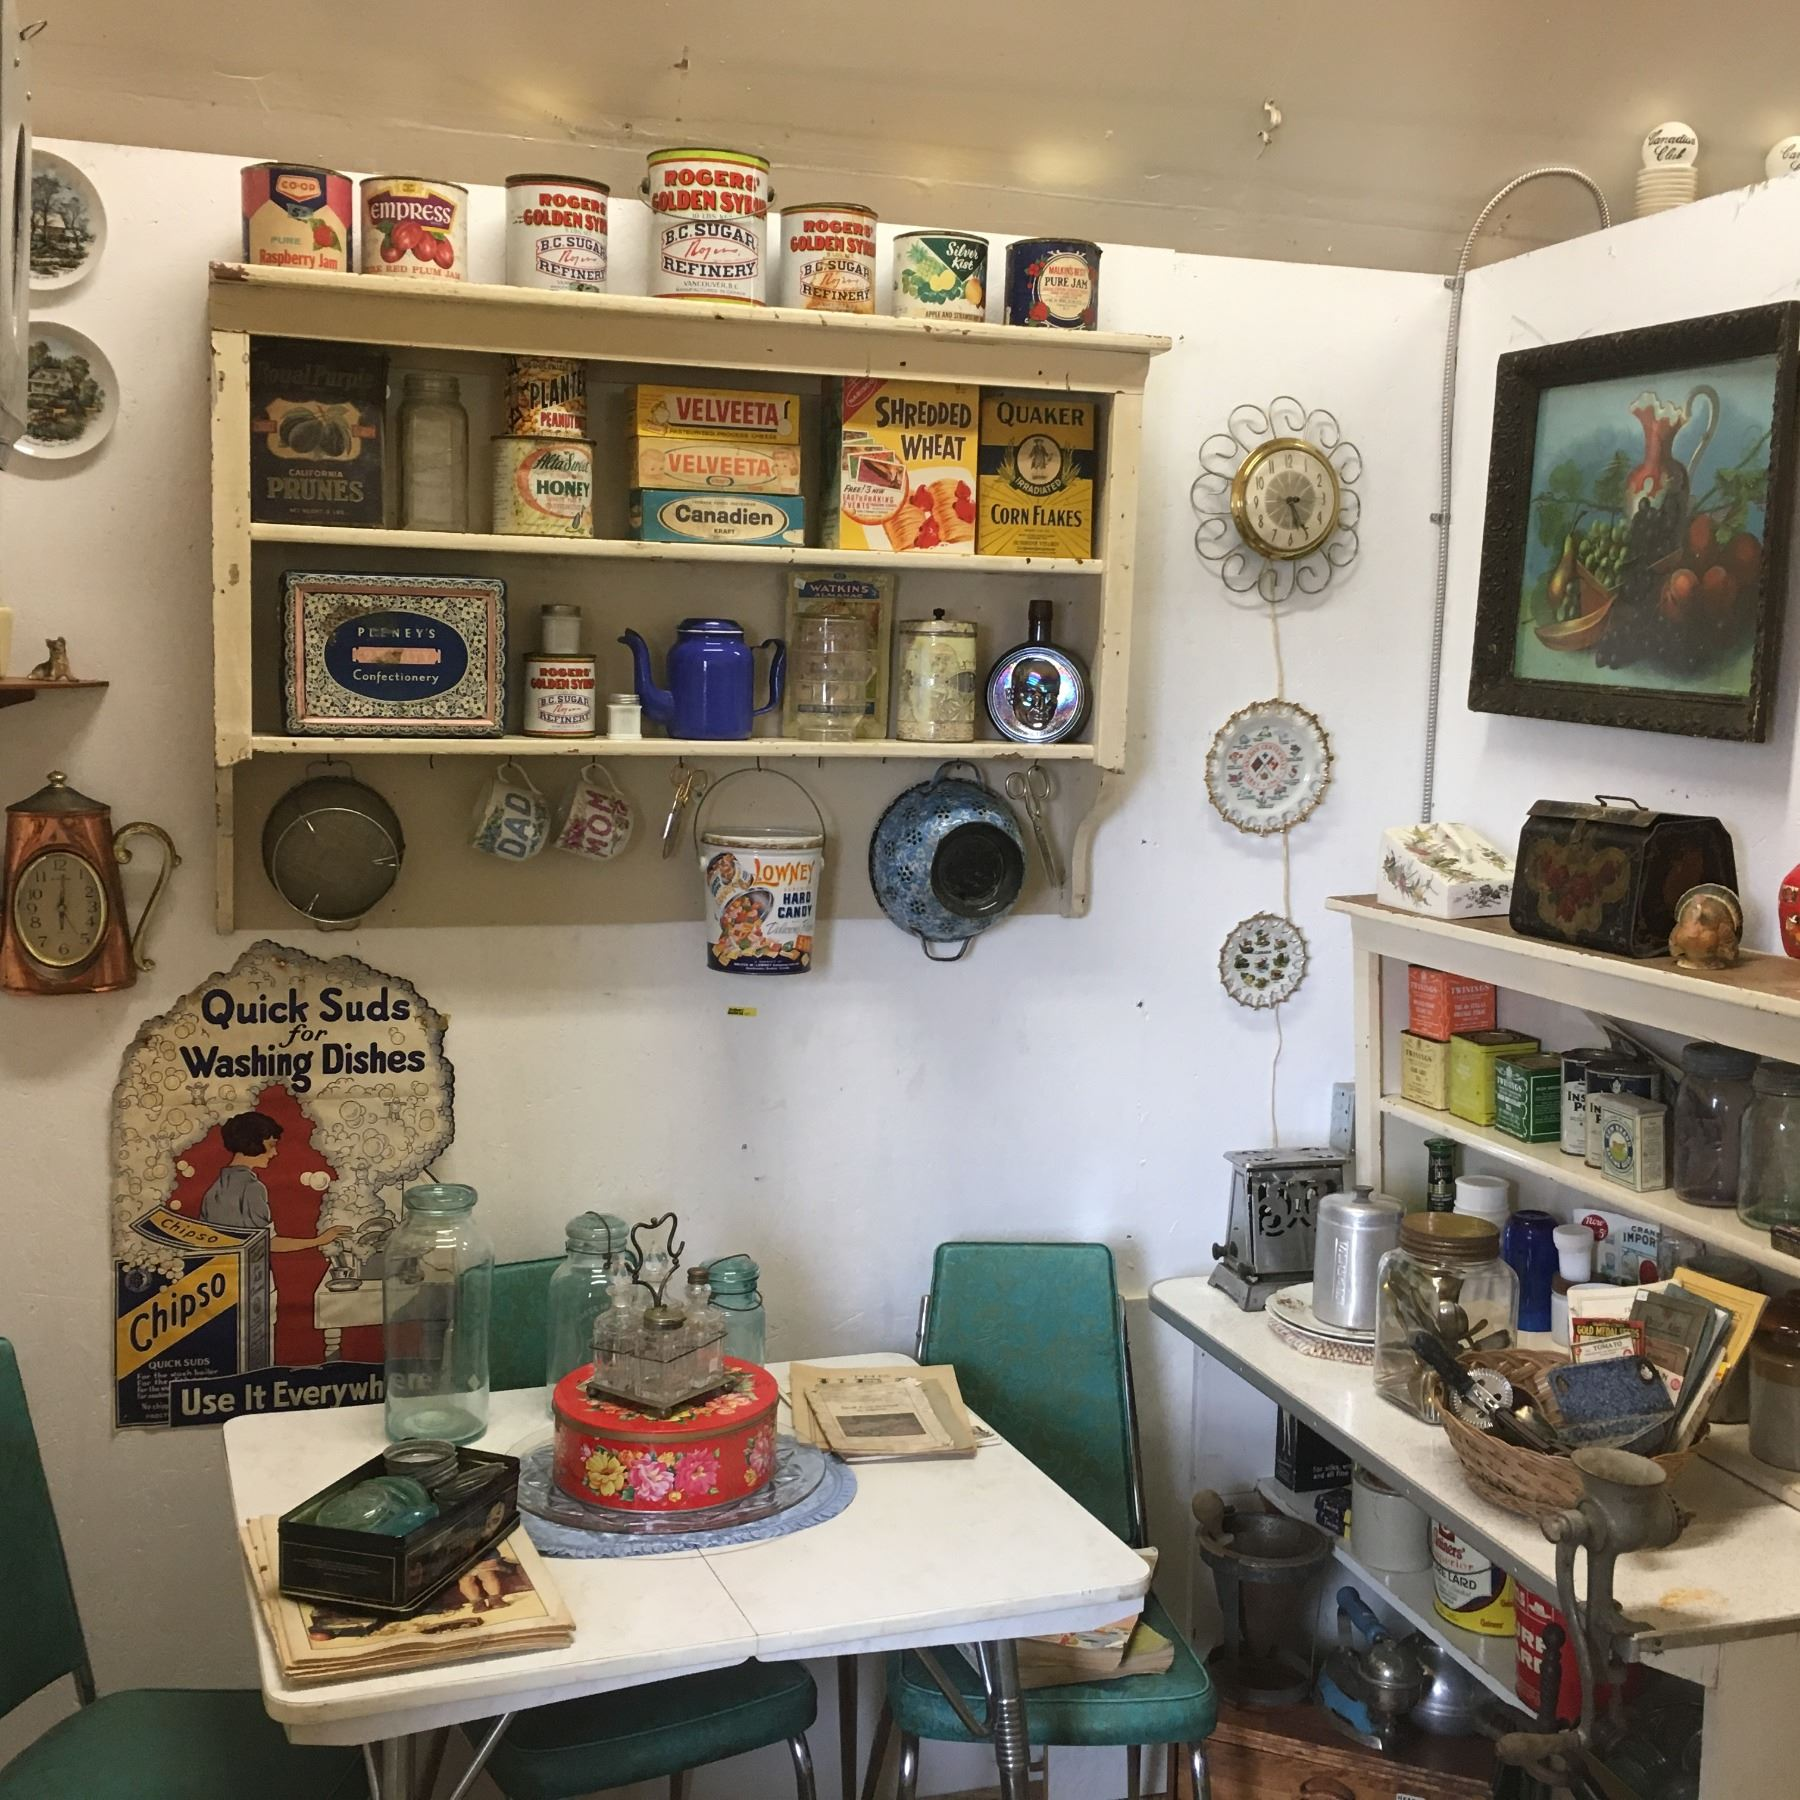 Retro Kitchen Room Display Table Chairs Tins More